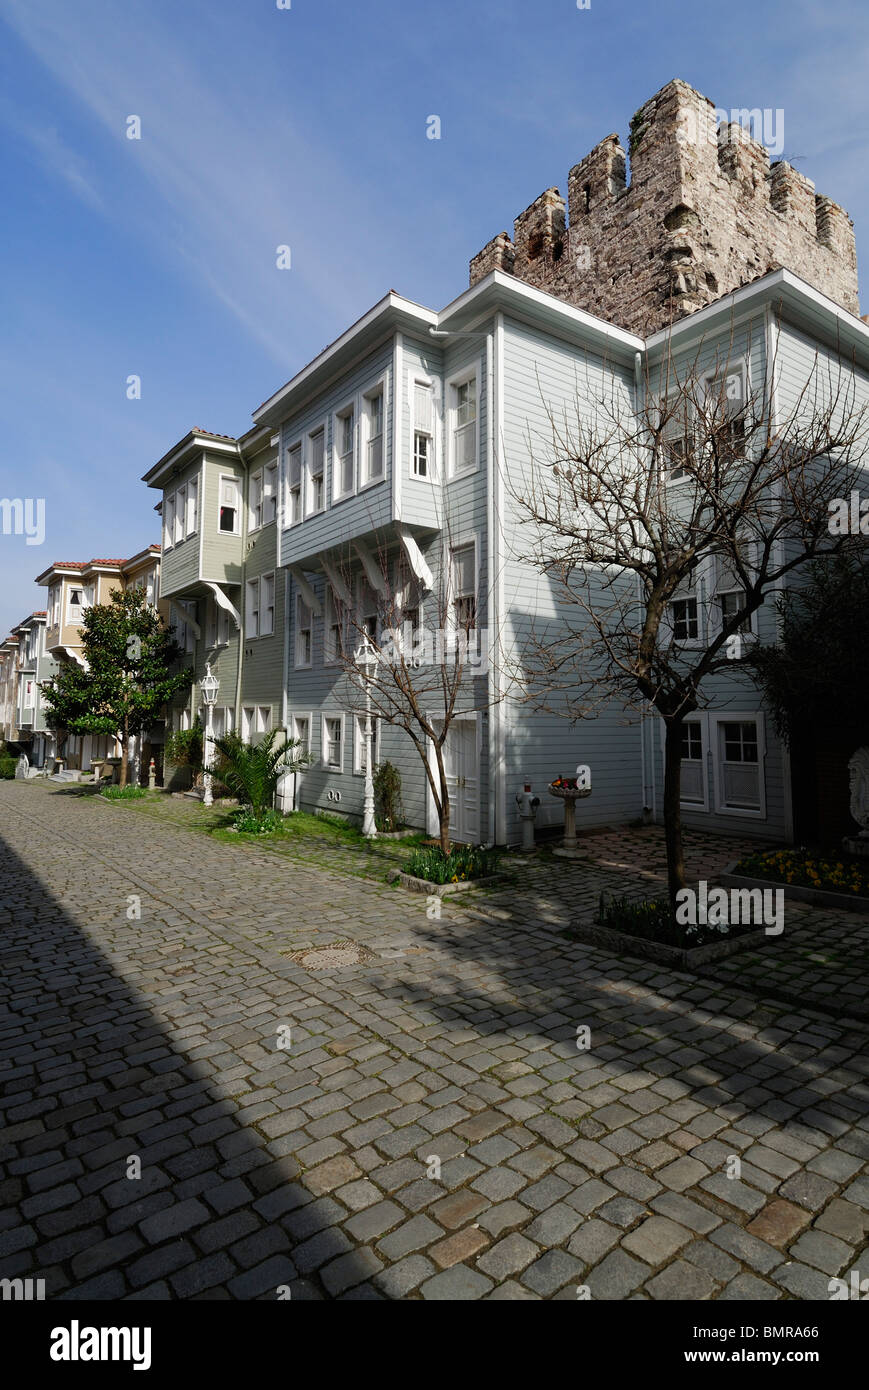 Istanbul. Turkey. Traditional Wooden houses on Sogukcesme Sok built against the walls of Topkapi Palace, Sultanahmet. - Stock Image